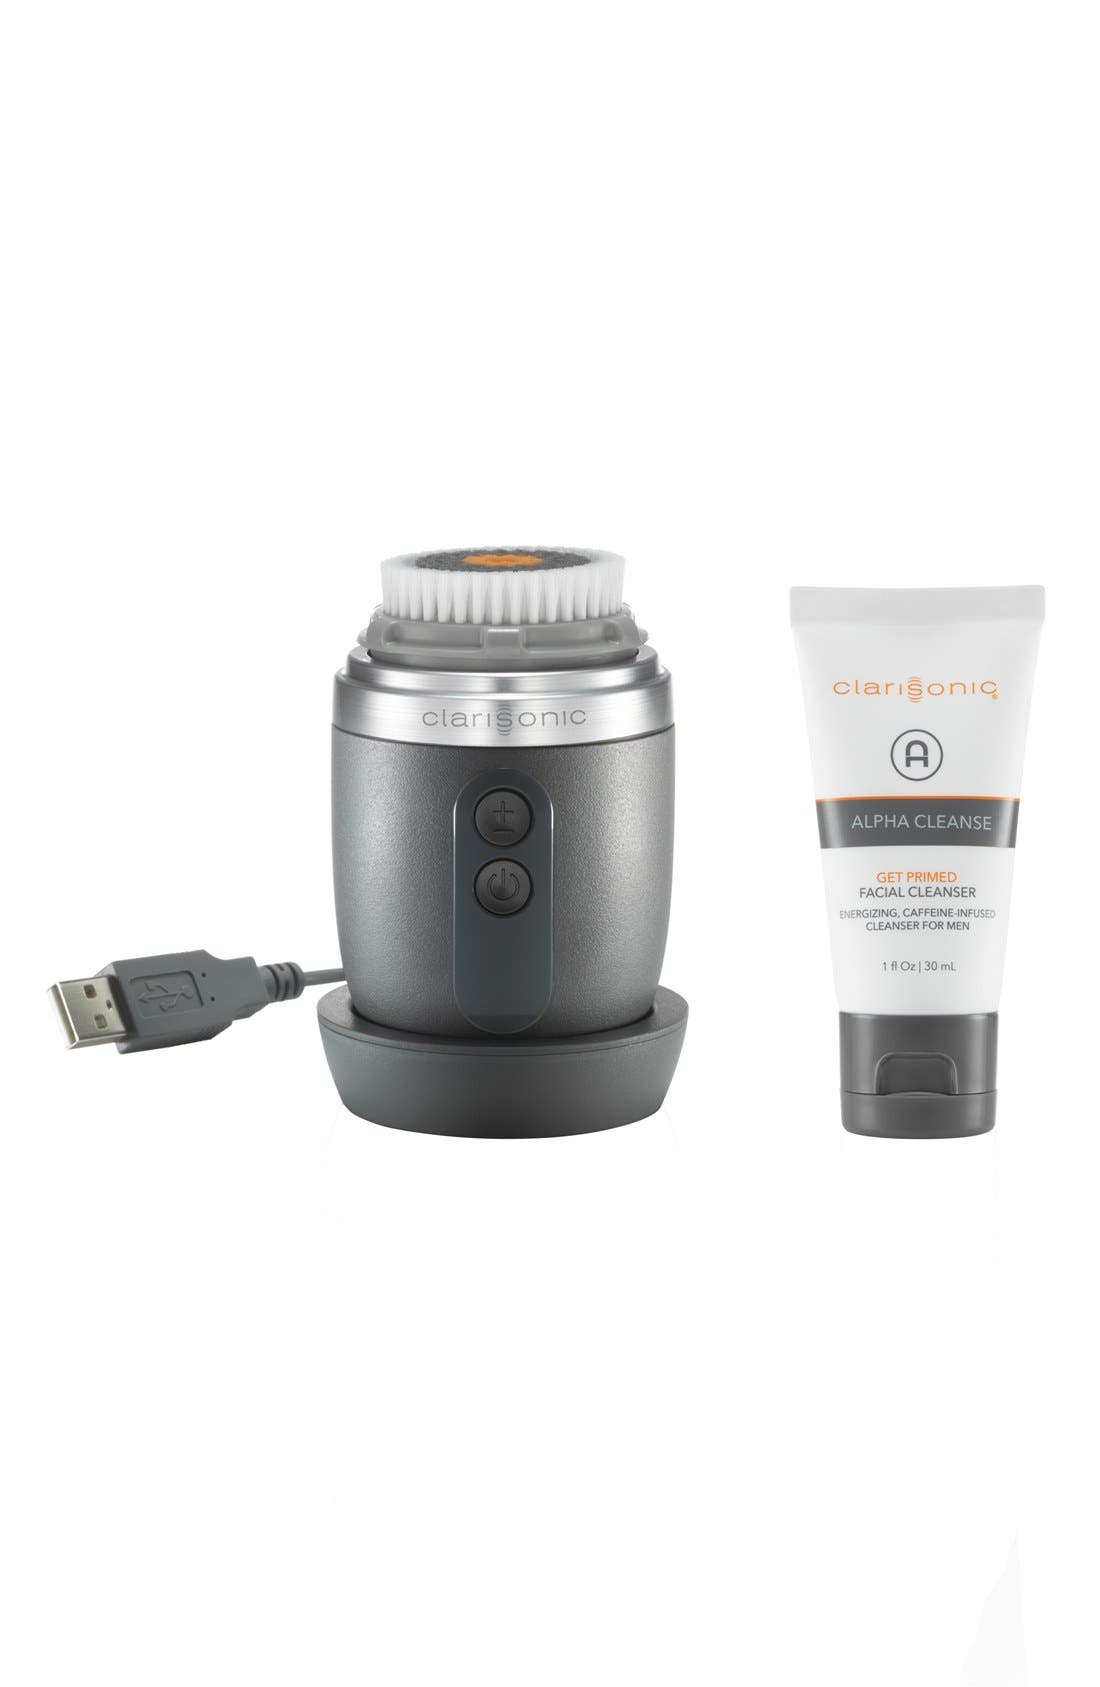 CLARISONIC Alpha Fit Sonic Cleansing System for Men